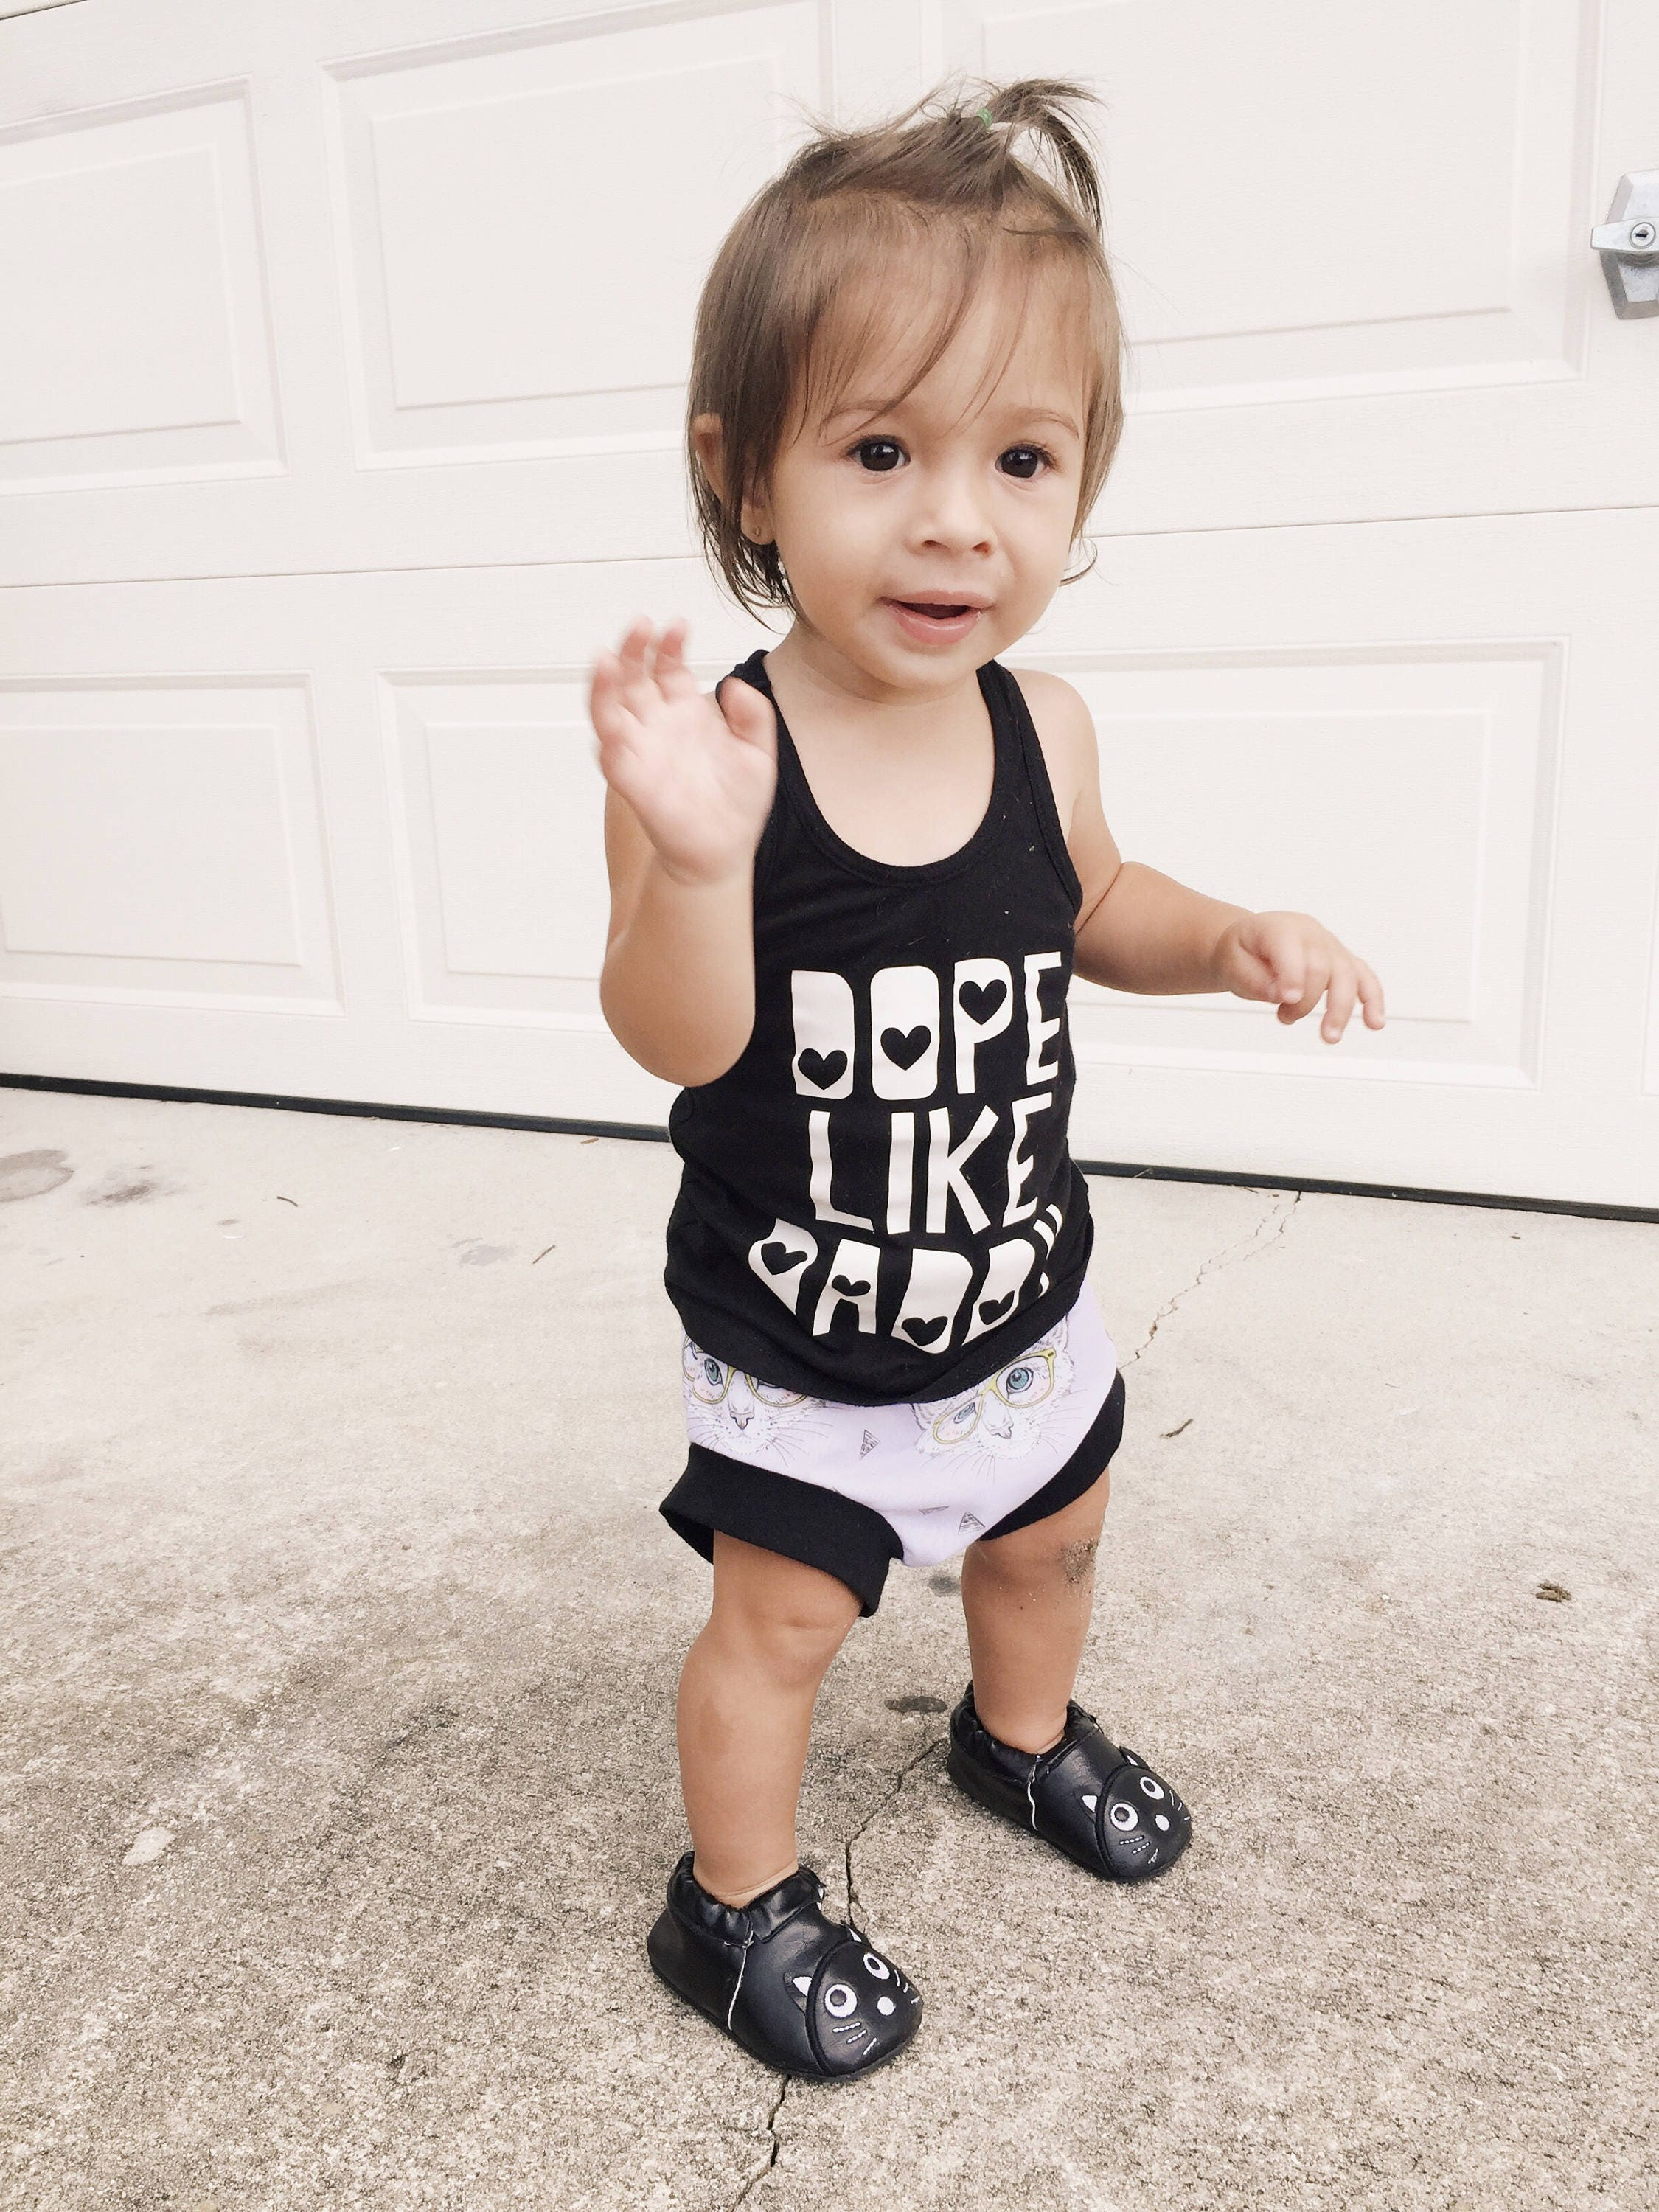 Dope like daddy baby racerback toddler racerback graphic tee